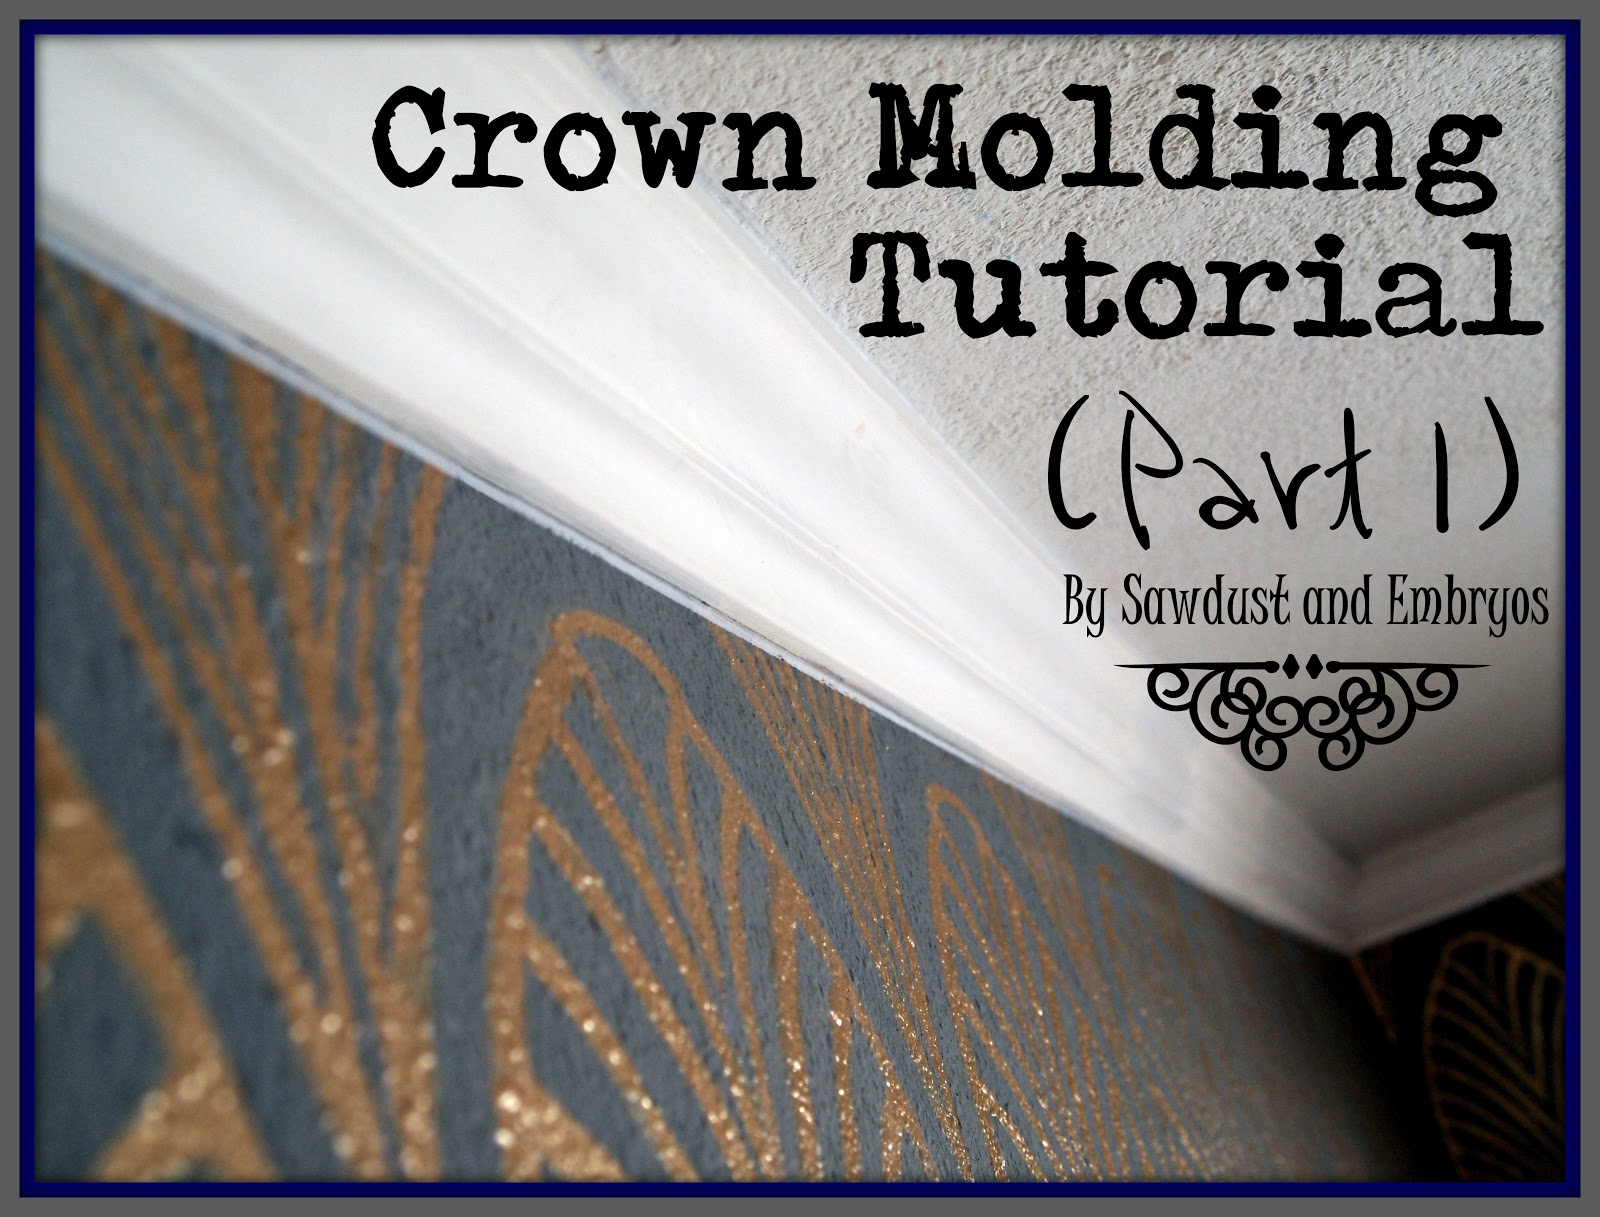 [Crown%2520Molding%2520Tutorial%2520%2528Part%25201%2529%2520by%2520Sawdust%2520and%2520Embryos%255B13%255D.jpg]